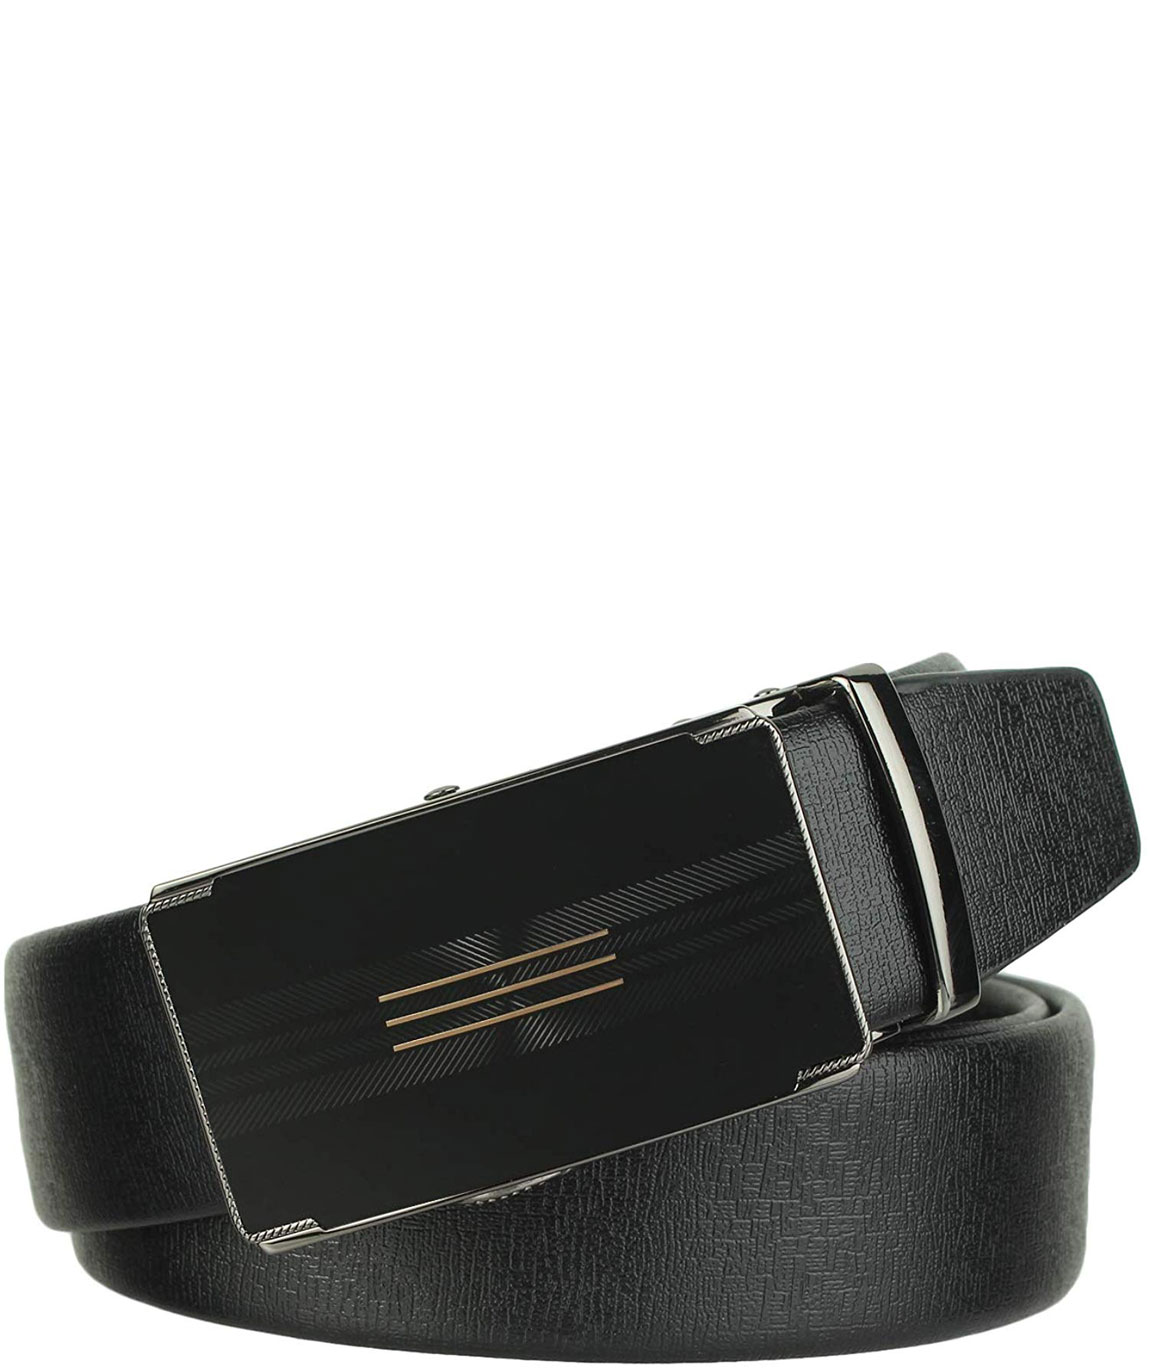 ZORO PU Leather Adjustable autlock ratched Buckle Belts Fashion Waist belt For Casual and Formal - Belt For Men, leather belt for men formal branded,gents belt, formal belt for mens